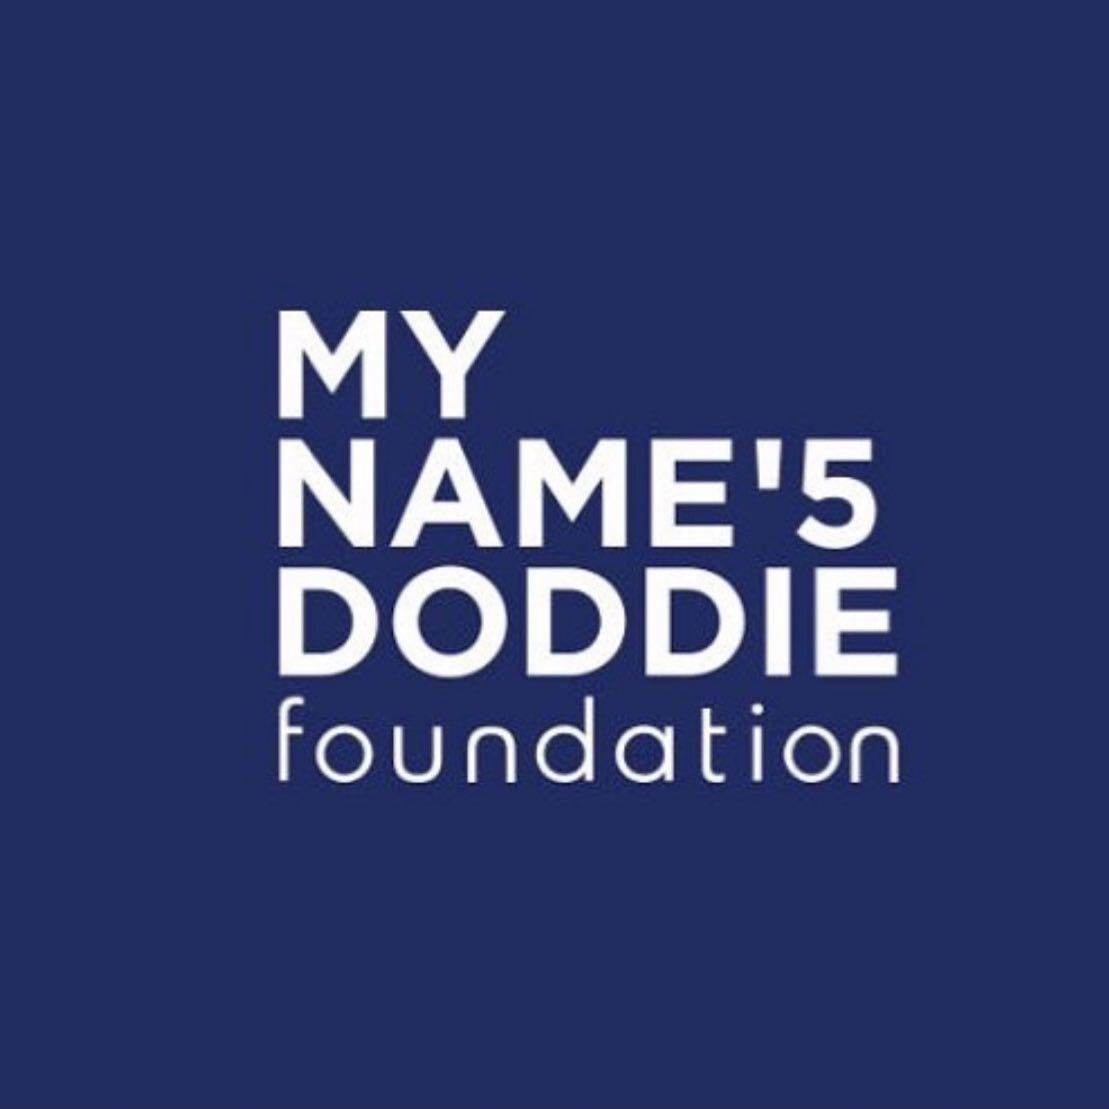 This Charity Tuesday we're celebrating @myname5doddie who are joining the Peak District Challenge...